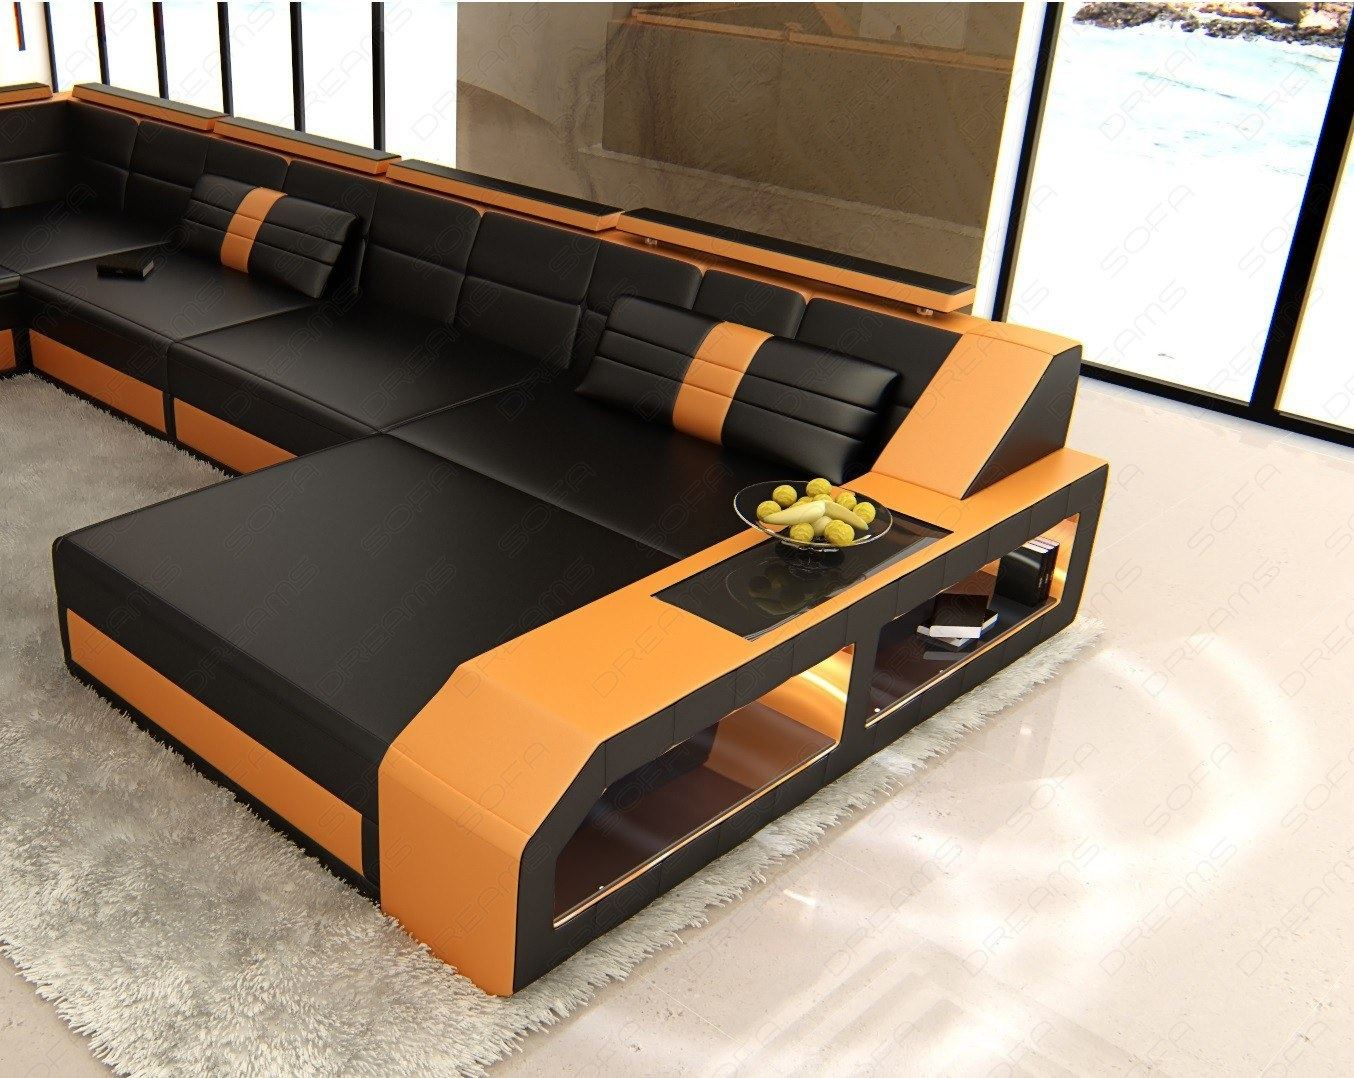 shaped sofa xxl leather matera u form designer couch lighting ebay. Black Bedroom Furniture Sets. Home Design Ideas